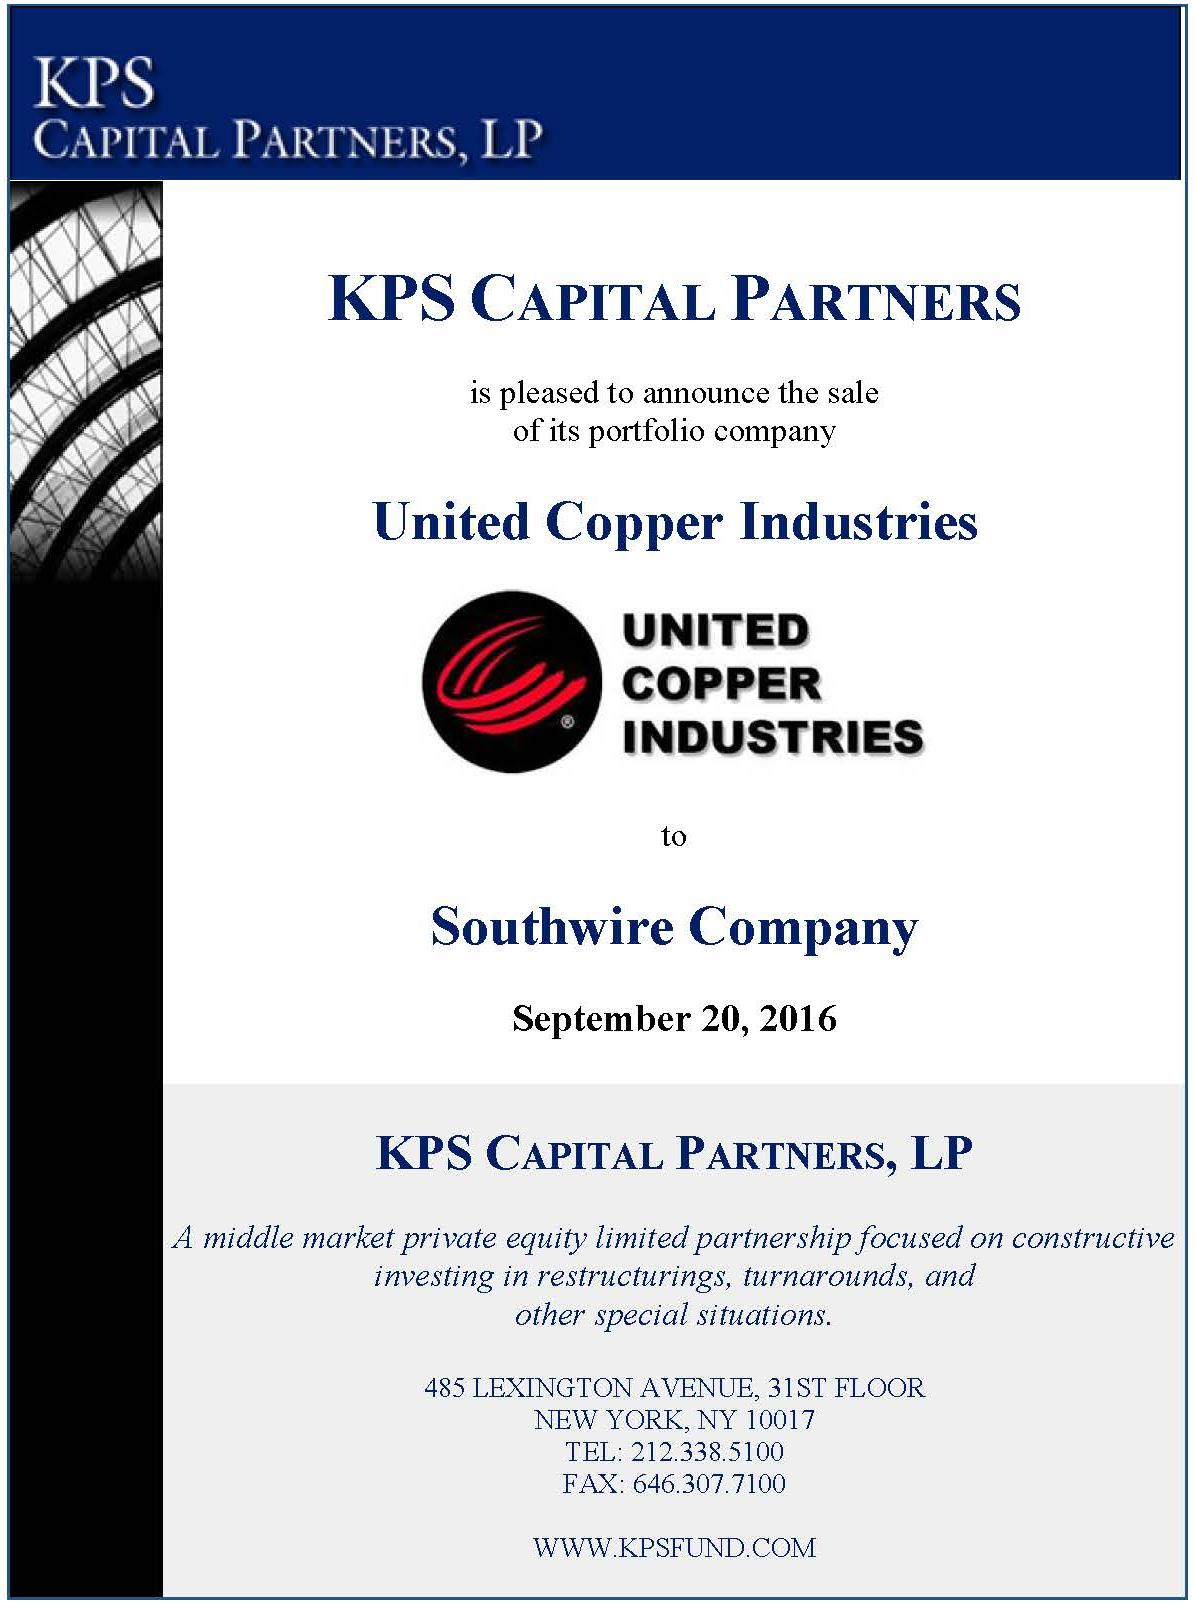 United Copper Industries, KPS Capital Partners